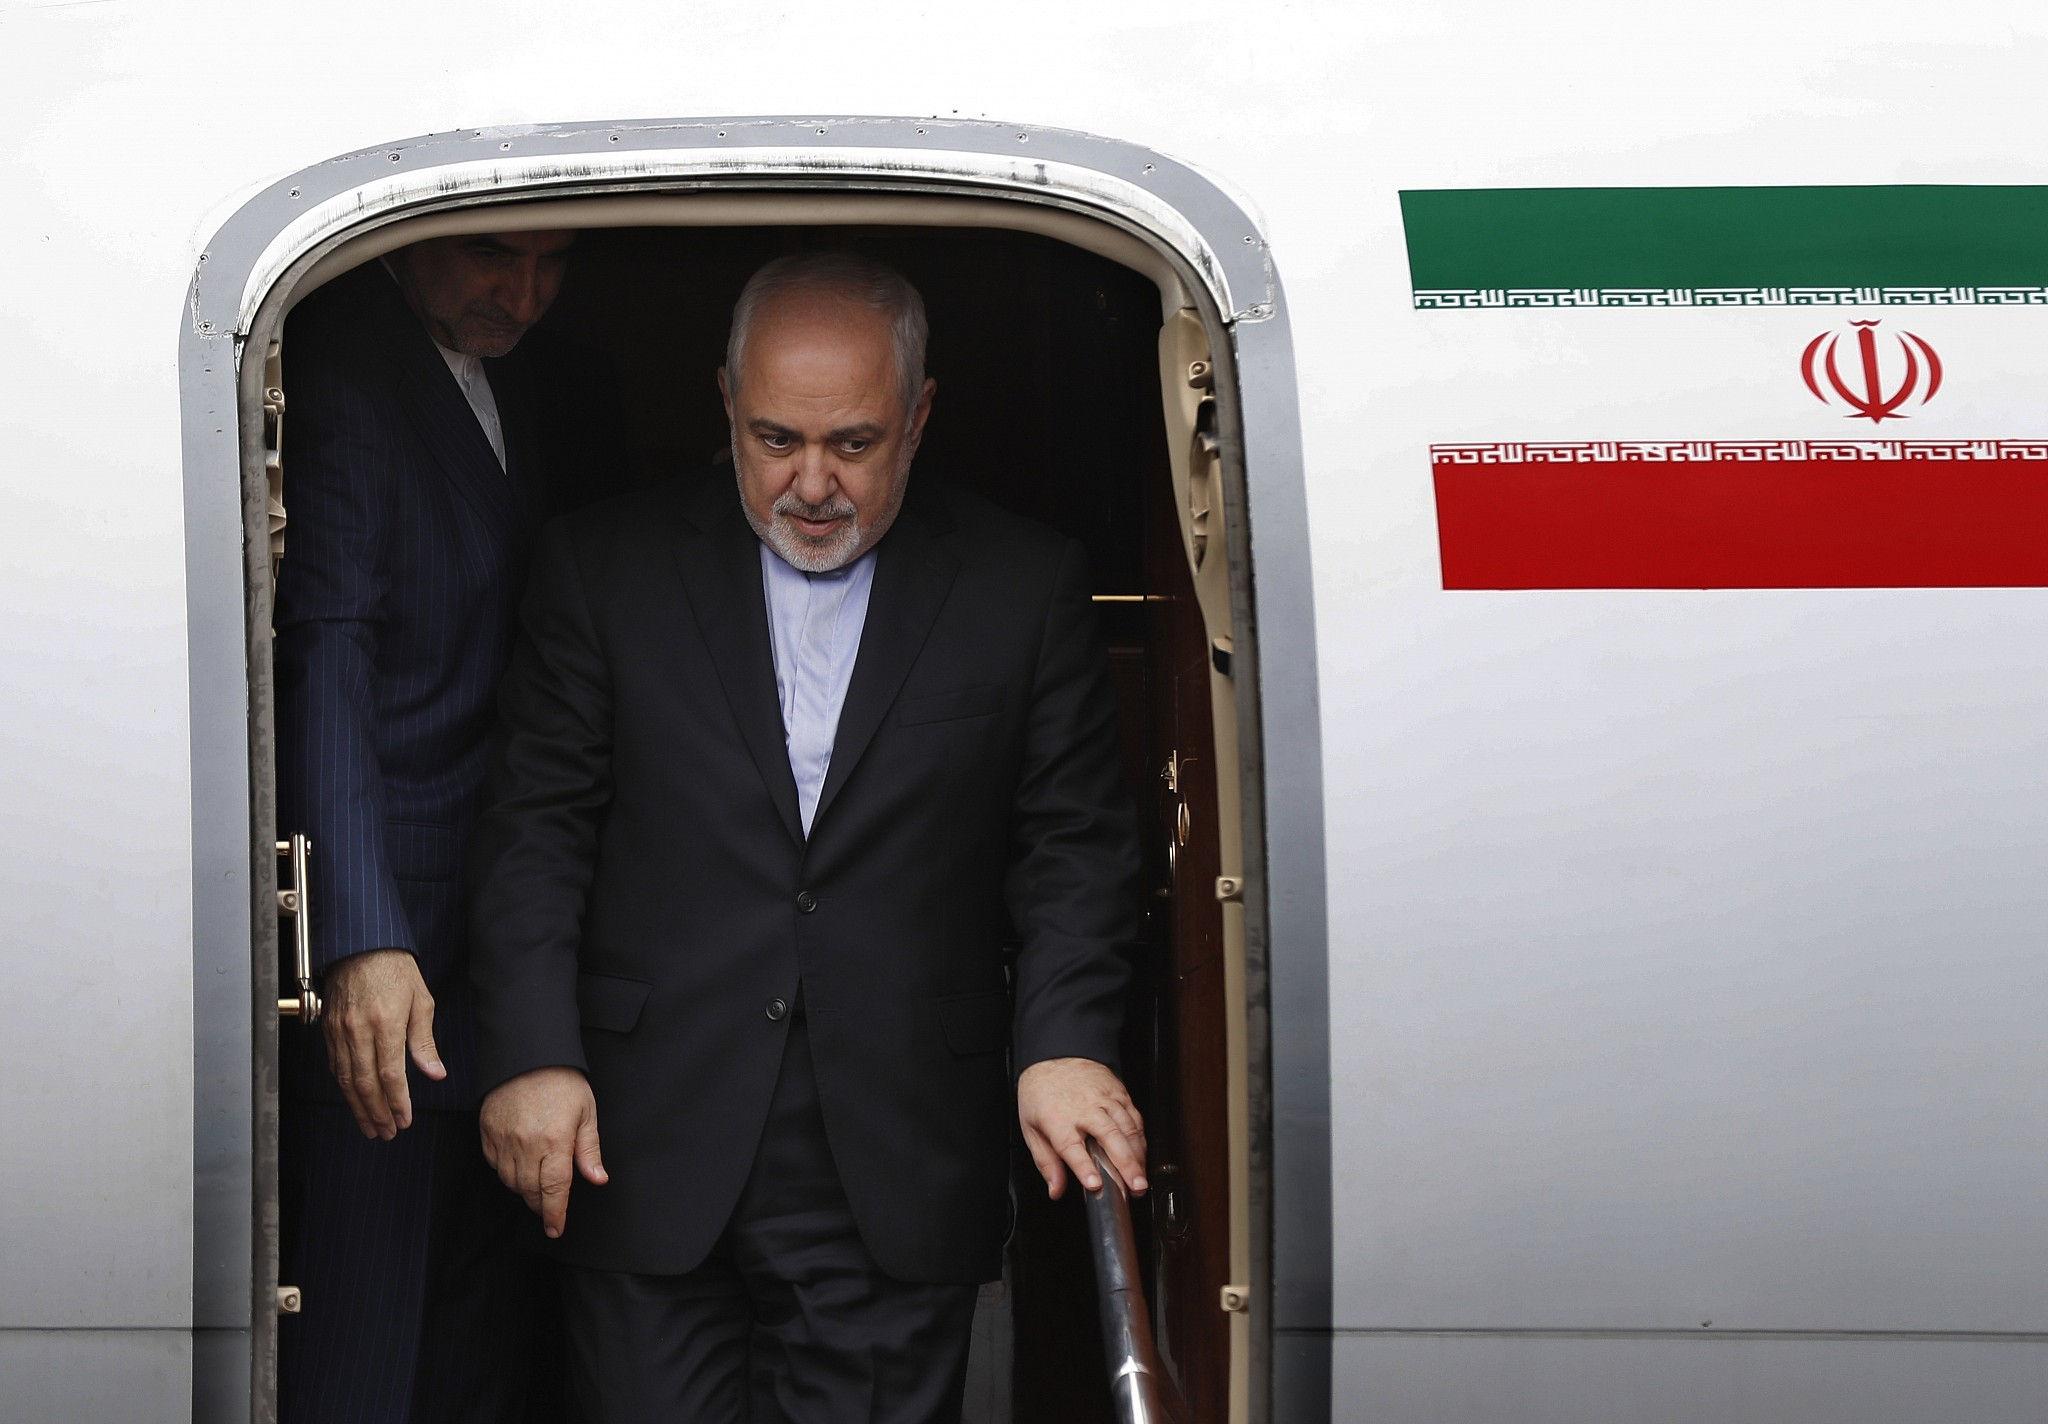 Lebanon to boycott Warsaw conference seen as hostile to Iran